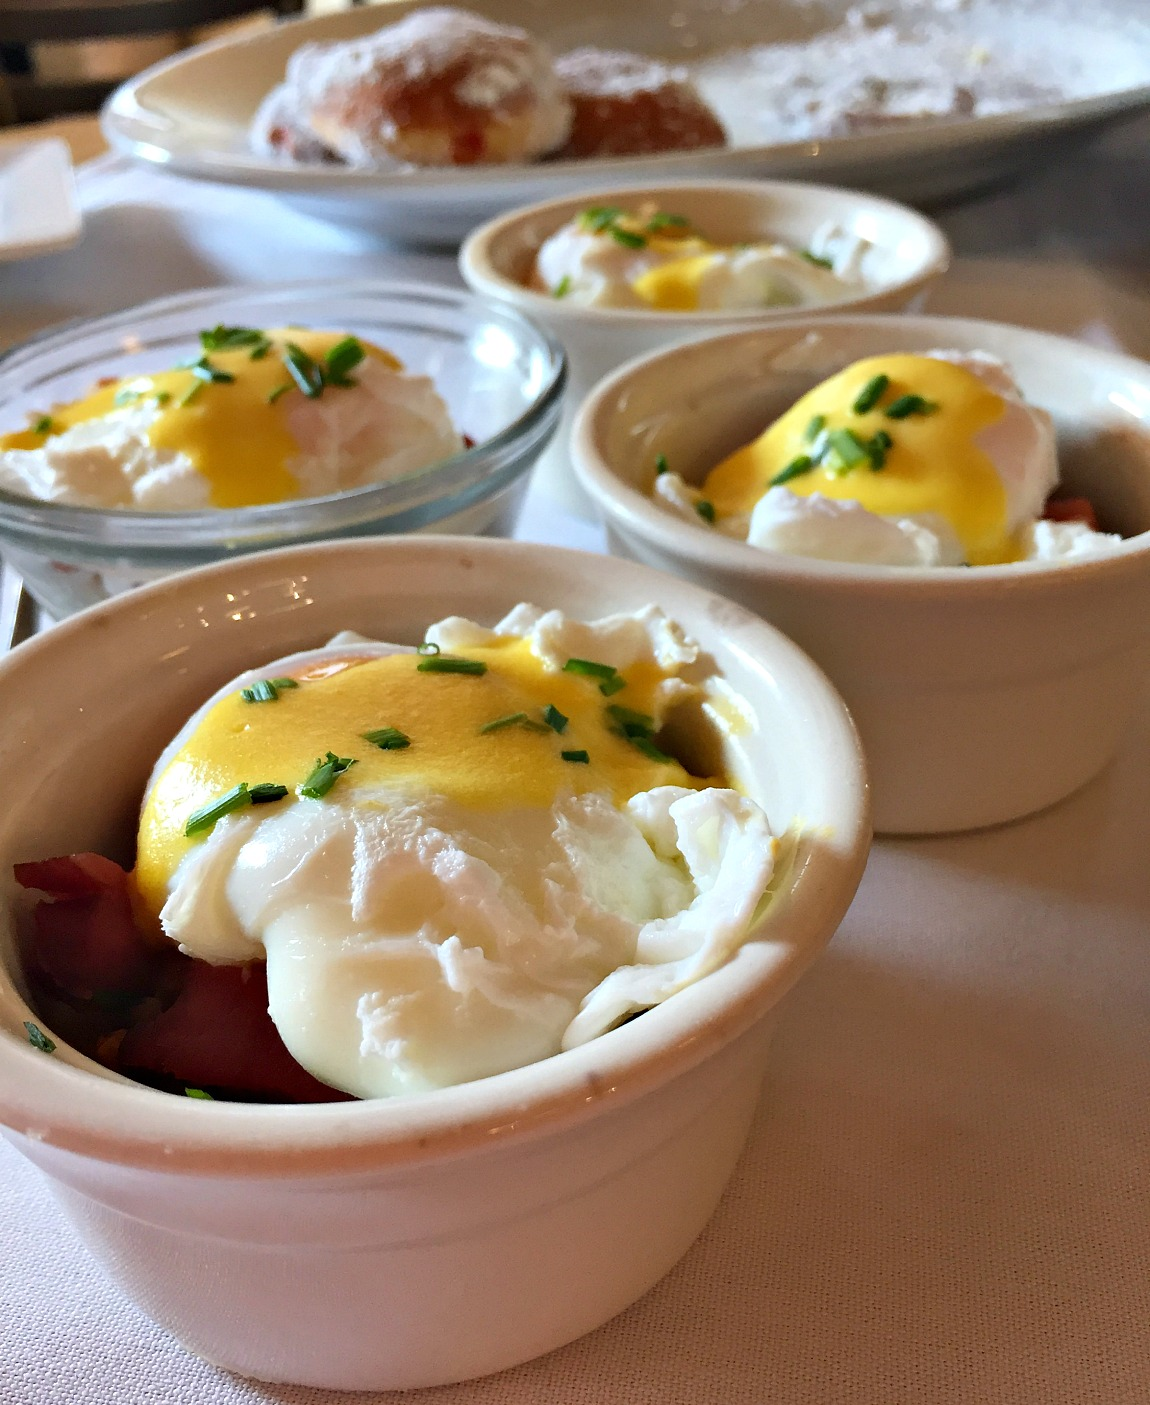 No bake individual mashed potato breakfast ramekins with bacon and a poached egg